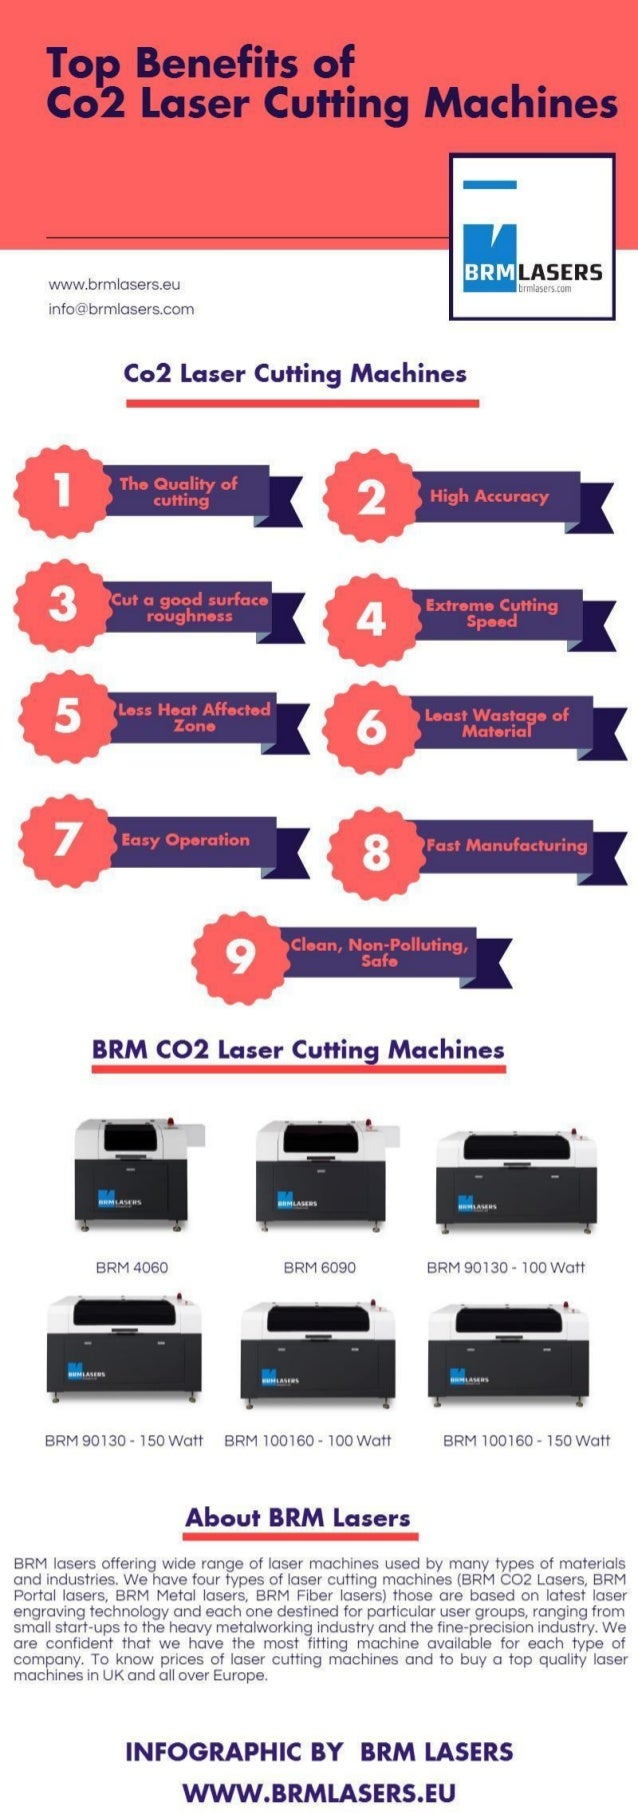 Top Benefits of Co2 Laser Cutting Machines  LASERS  www. brmlasers. eu 11,. .;, .g, .,. ,,; m     infoiéi brmlasers. com  ...